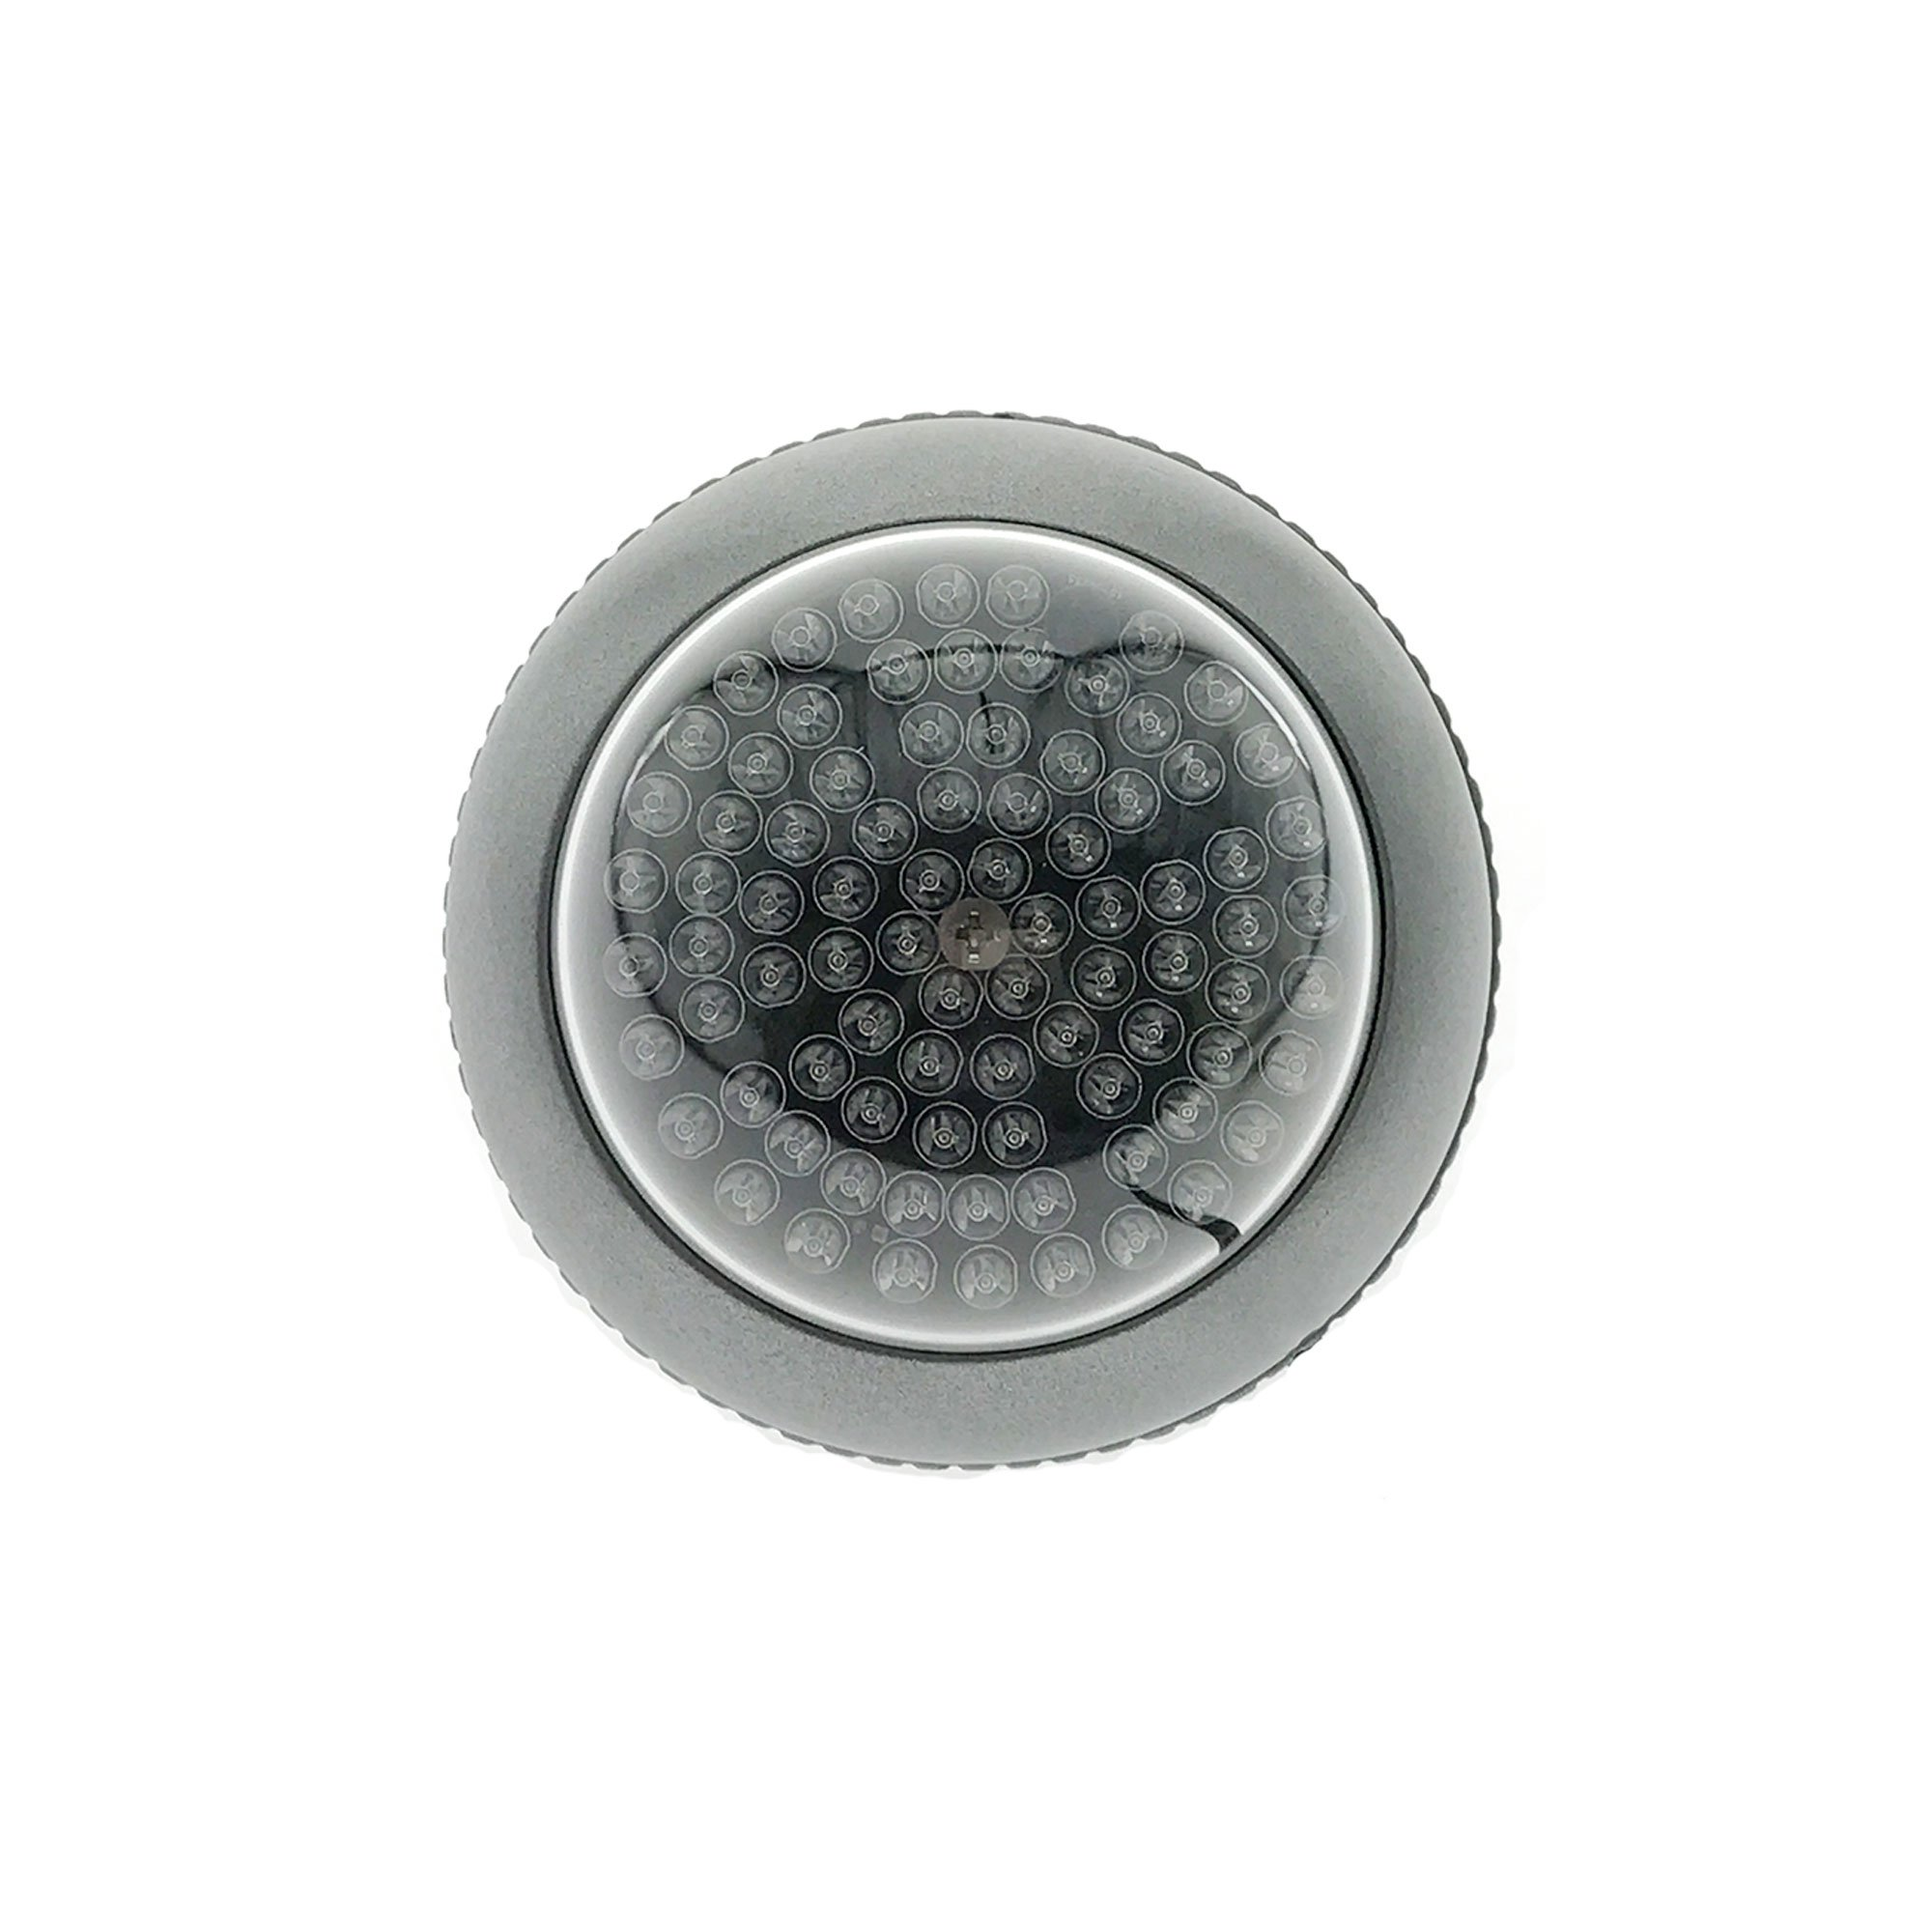 CMVision Wide Angle IRD50-84 LED 120 Degree IR Dome Illuminator with Free 12V 500mA Power by CMVision (Image #1)